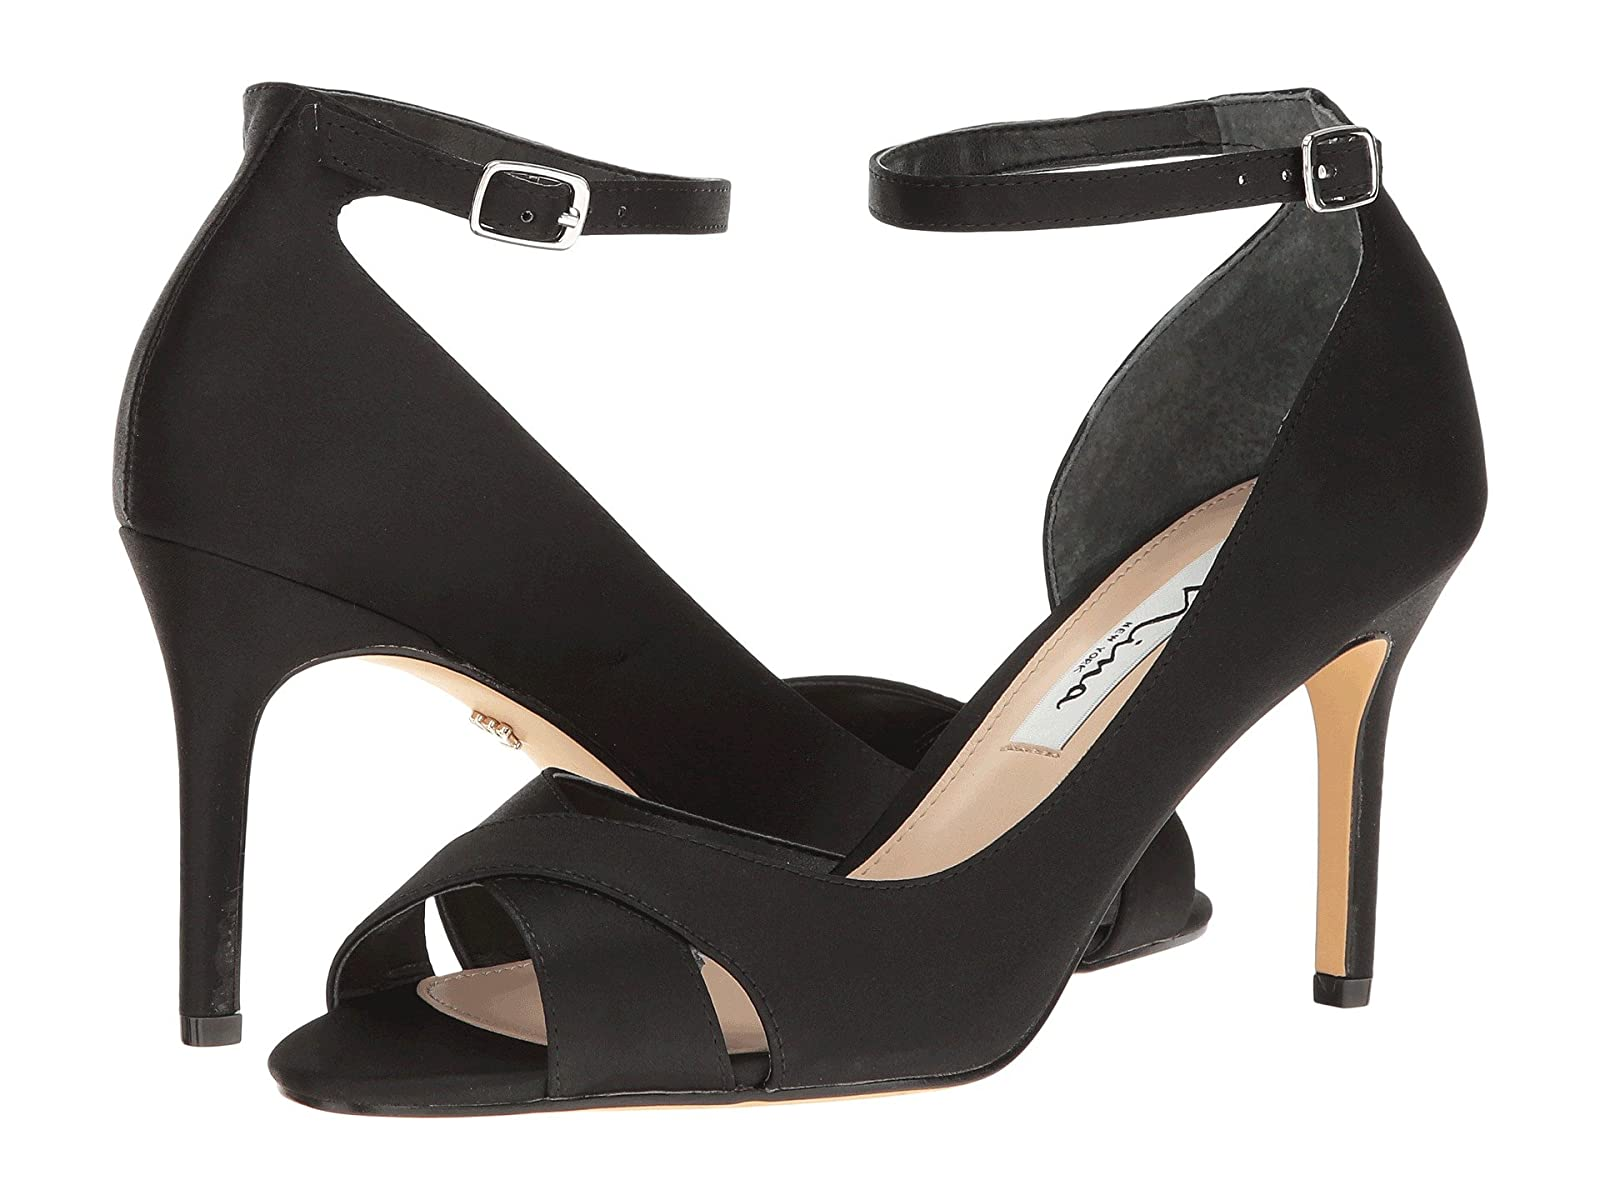 Nina FloCheap and distinctive eye-catching shoes